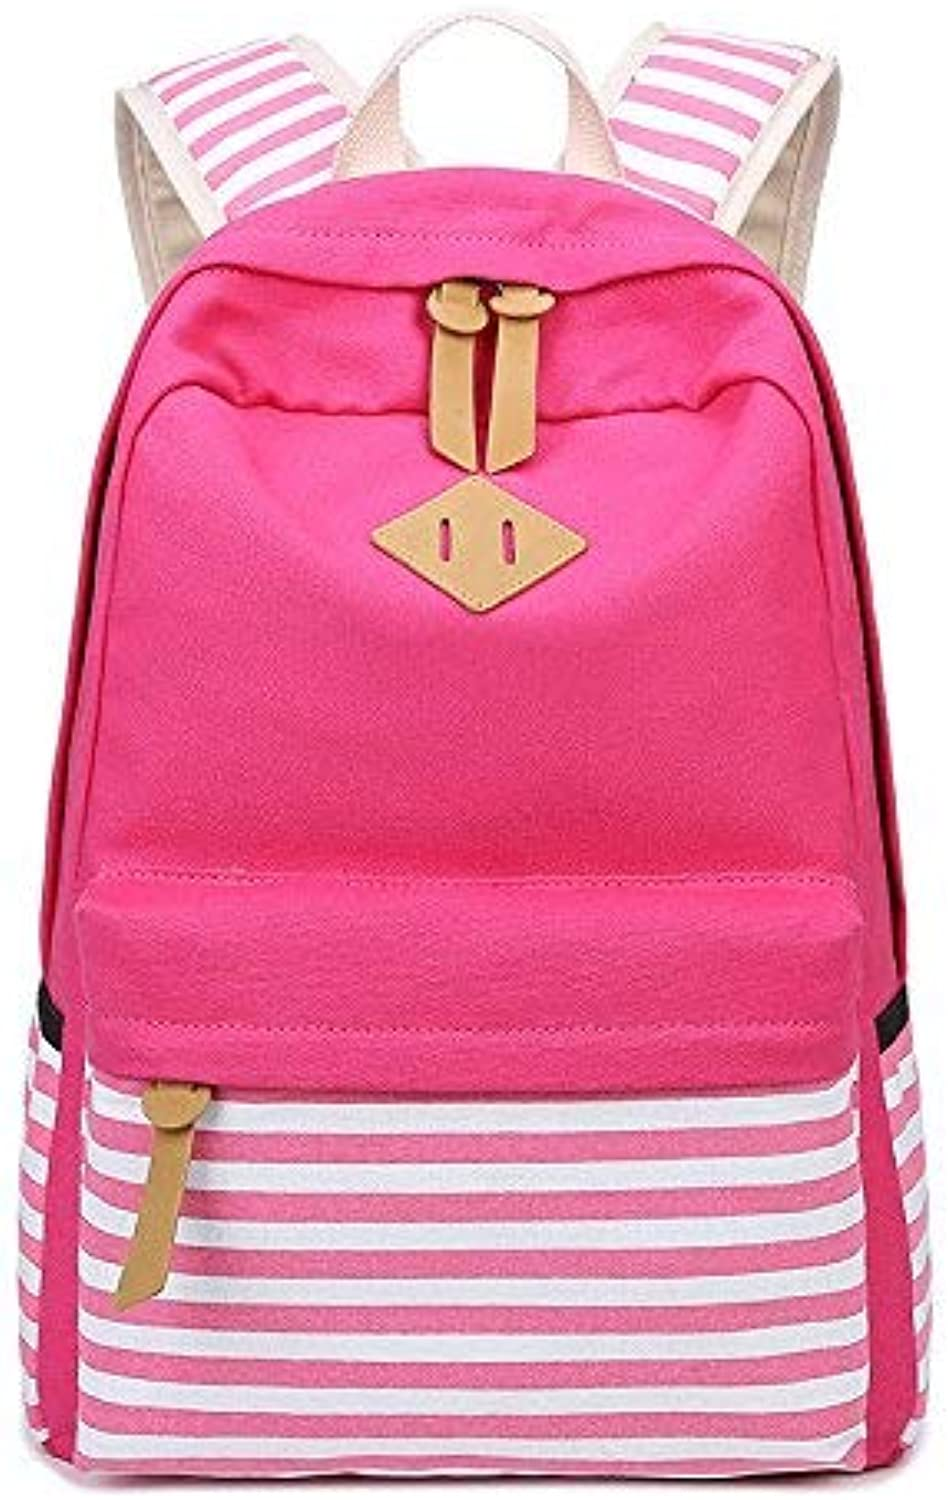 OIBHFO HOME Leng QL Personality Backpacks Fashion Backpack Canvas Striped Simple Backpack Middle School Student Bag